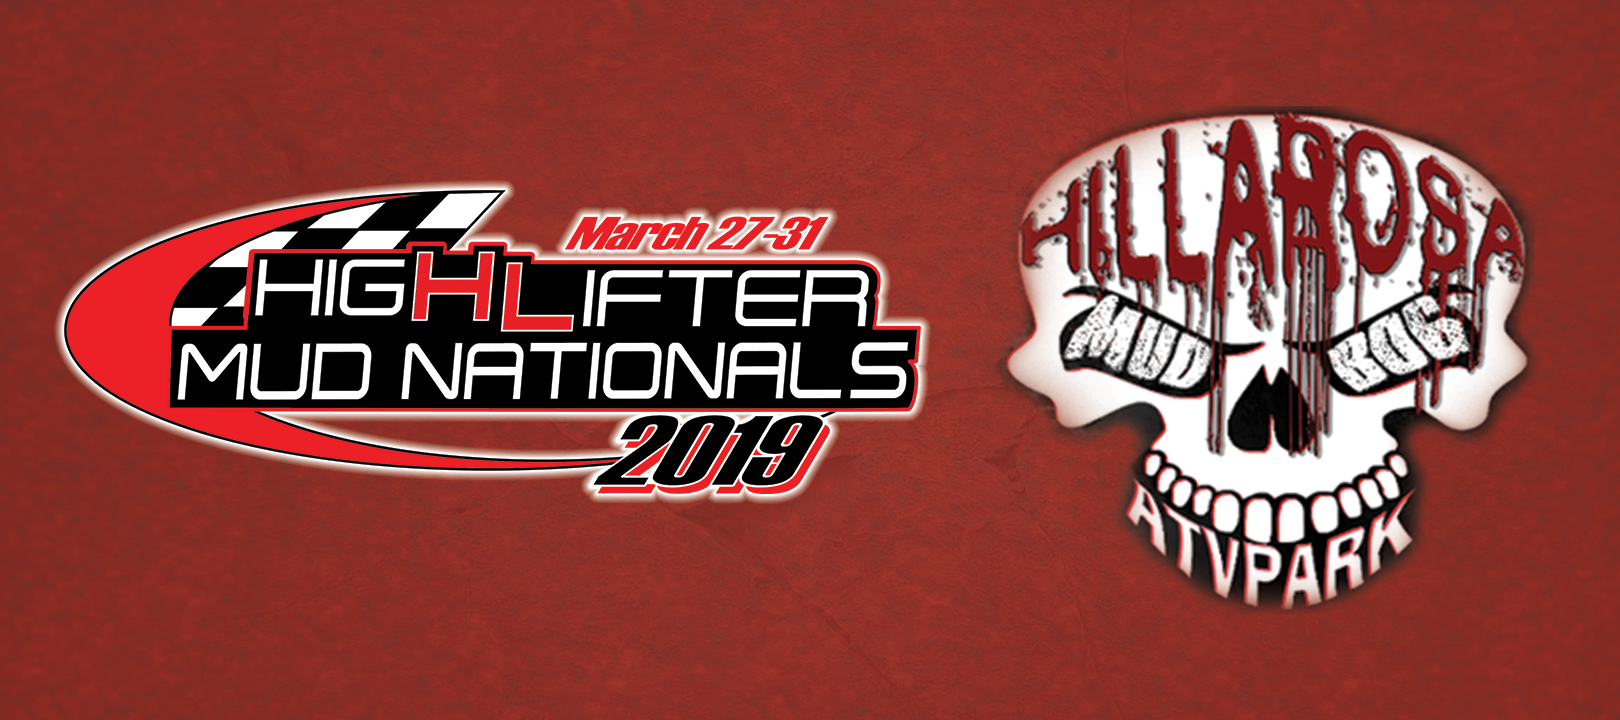 2019 Mud Nationals